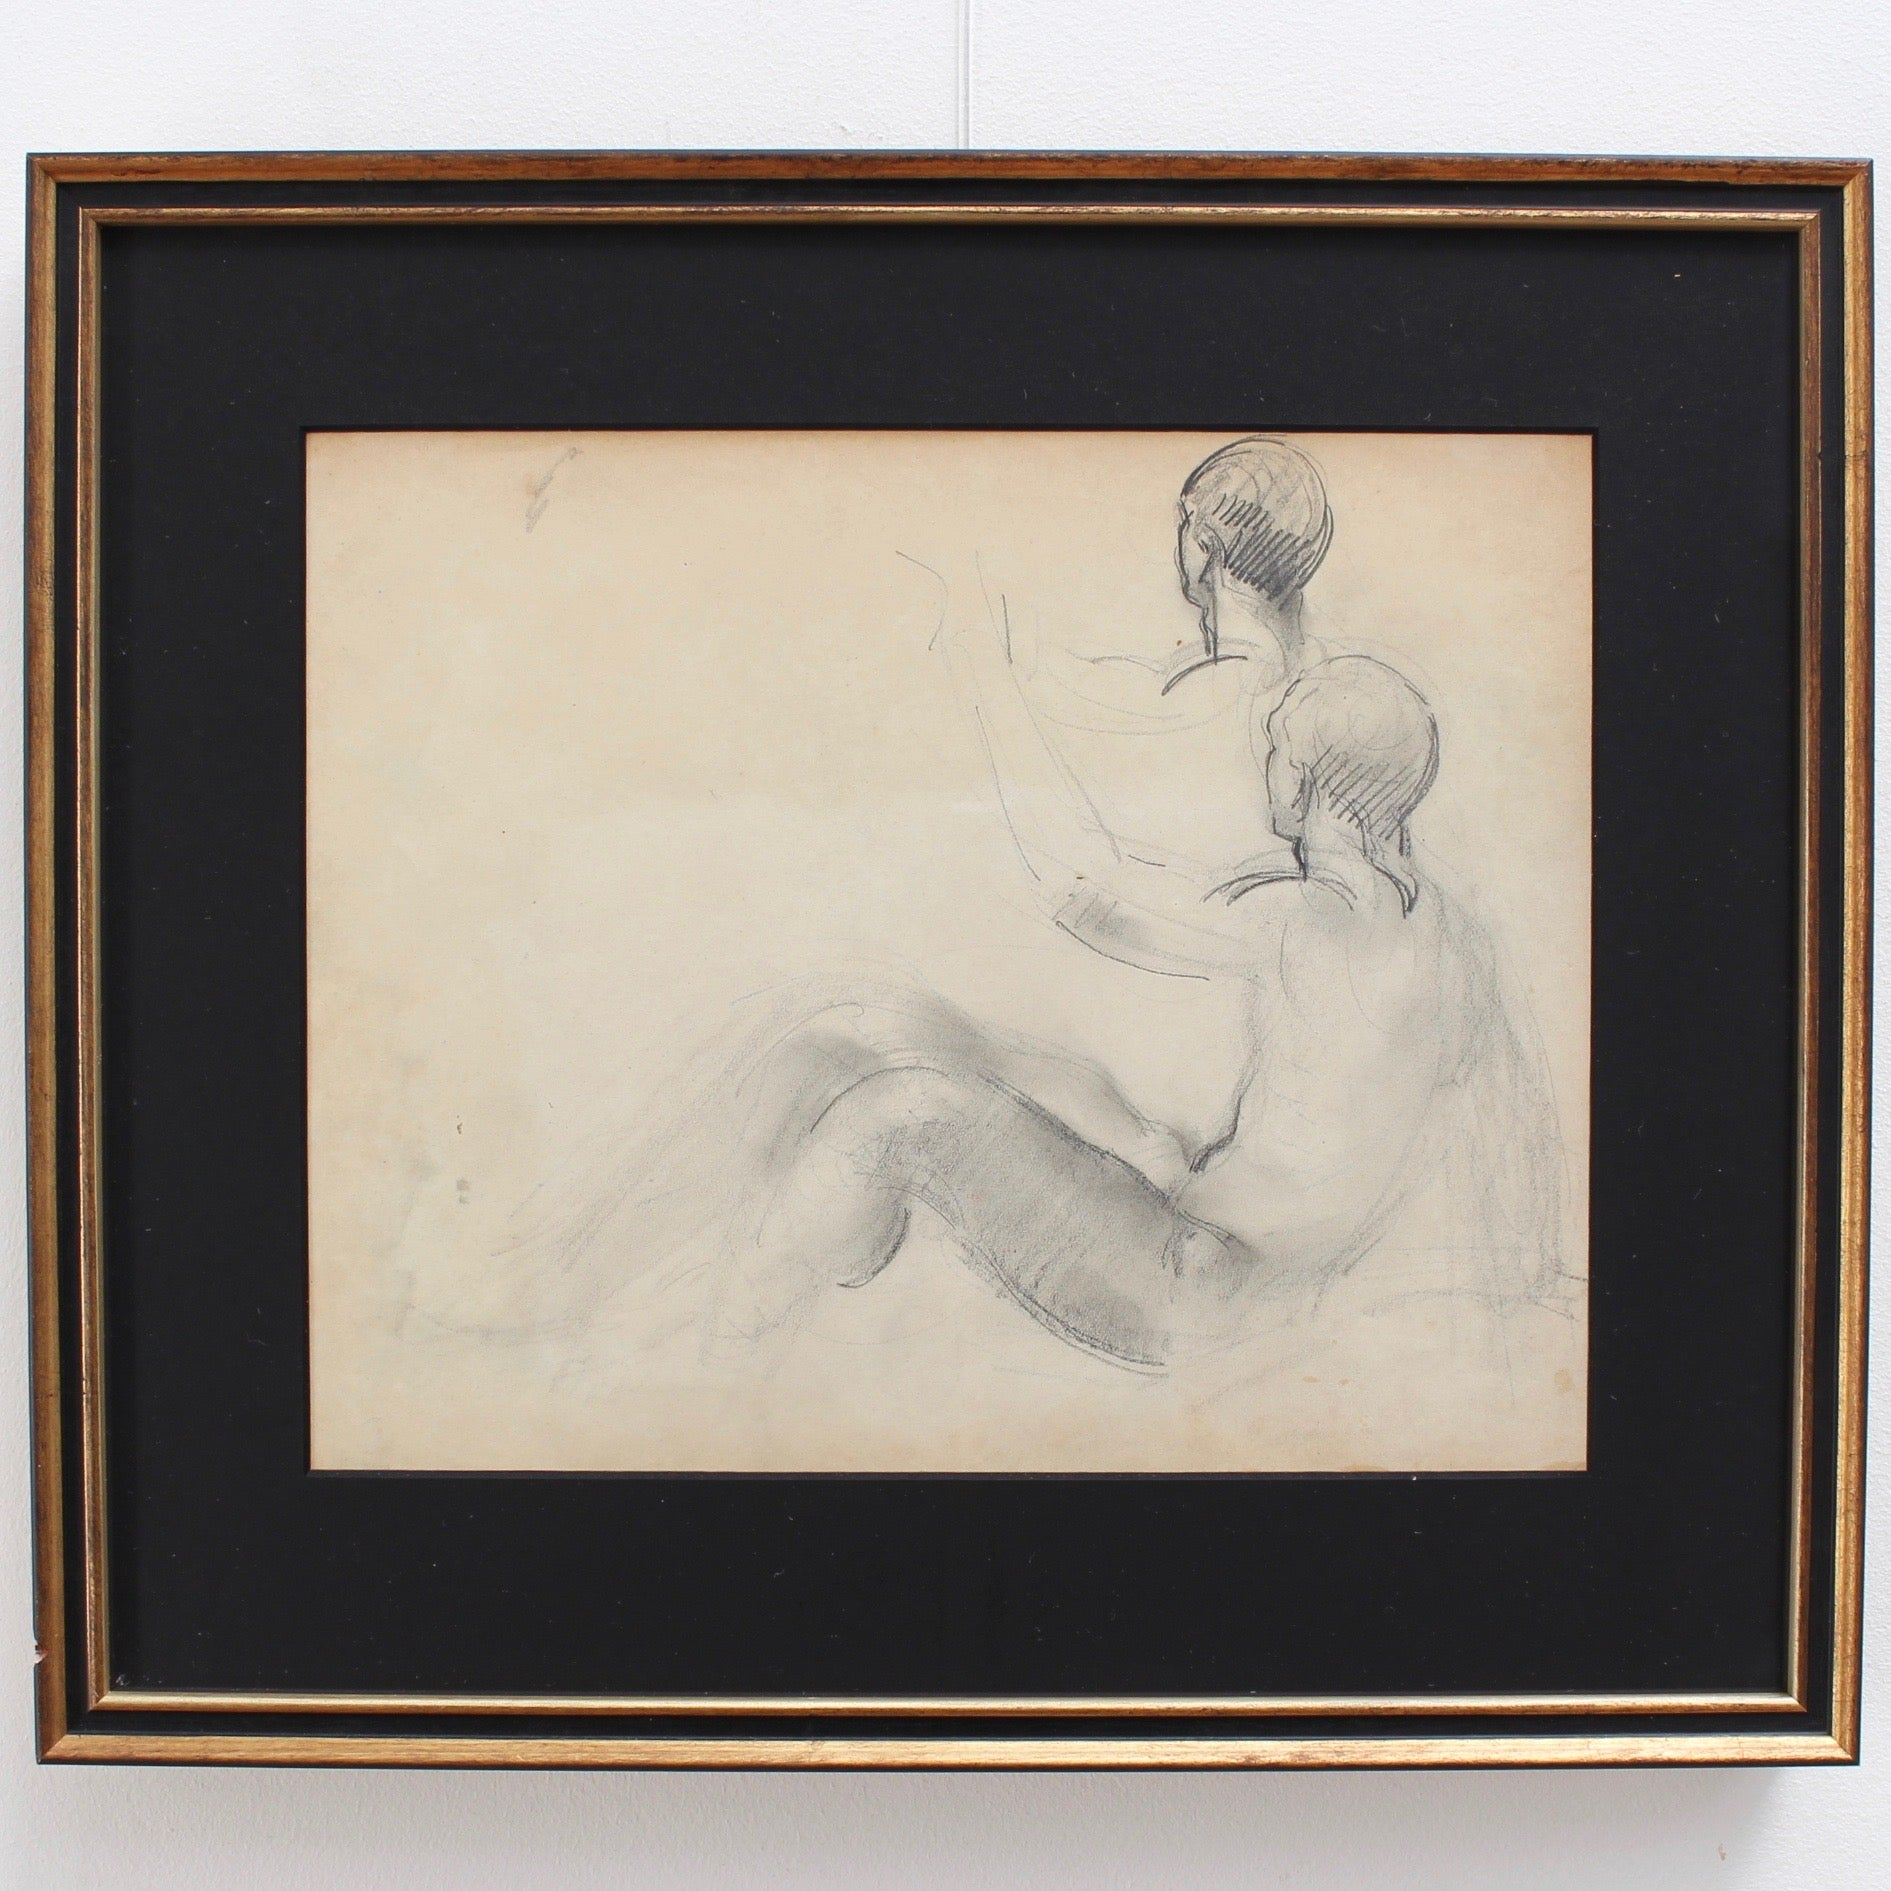 'Posing Nude Male' by Guillaume Dulac (circa 1920s)